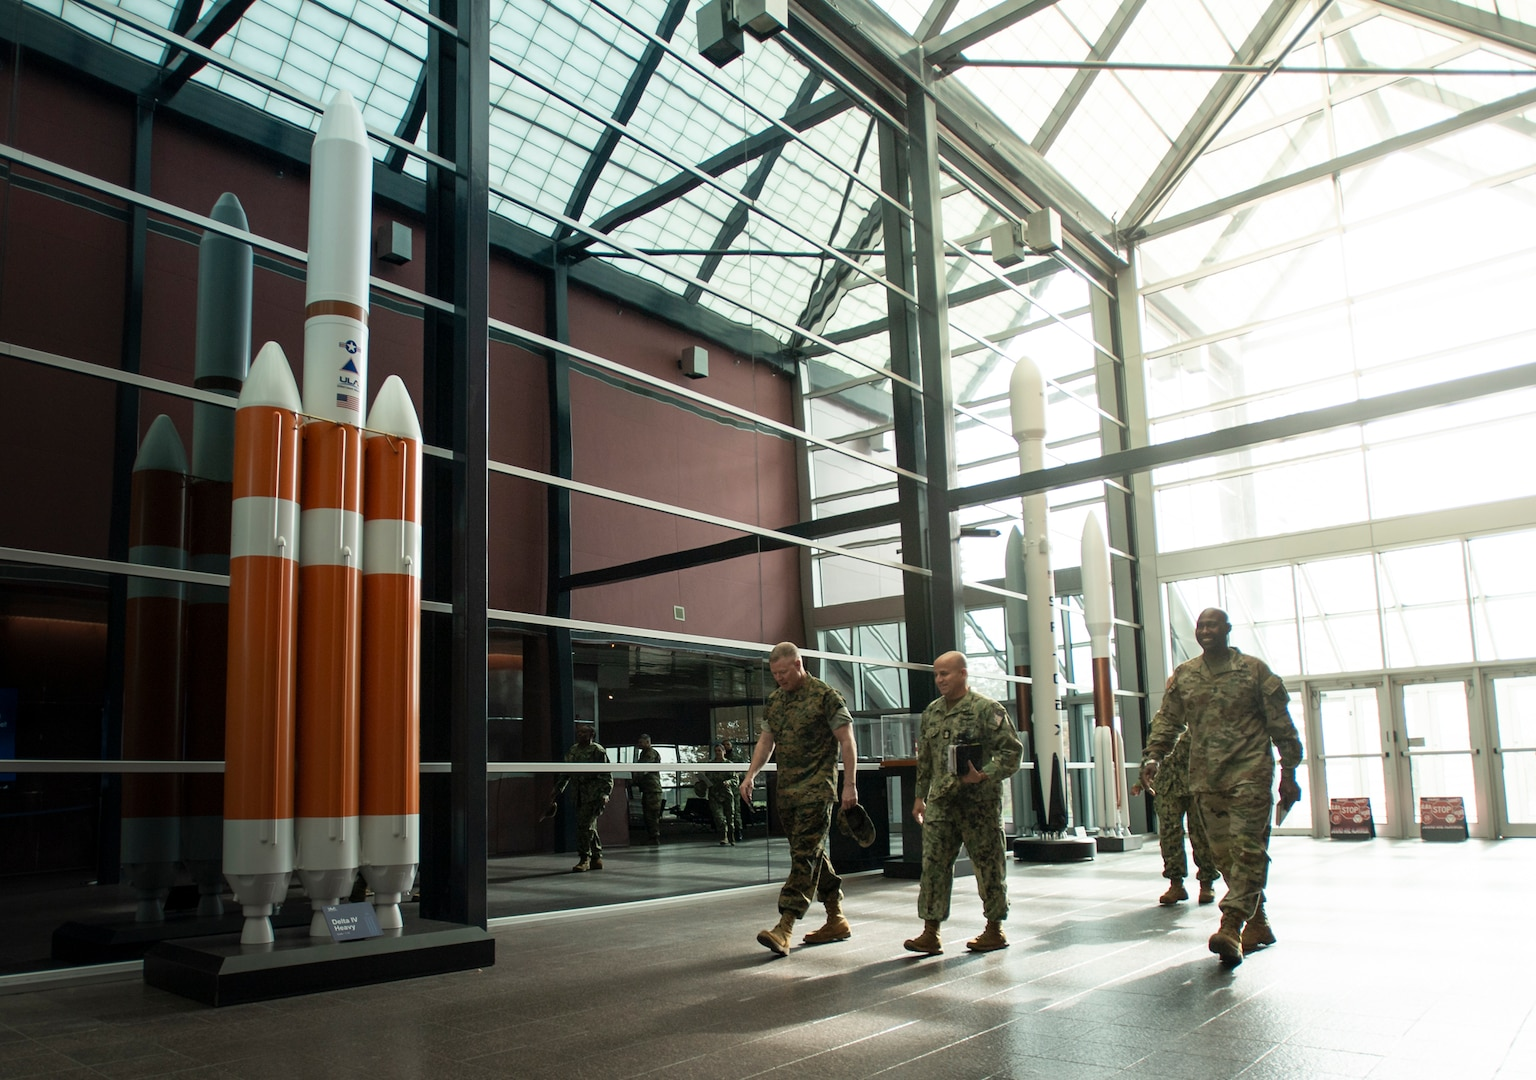 Military officials walk into a building